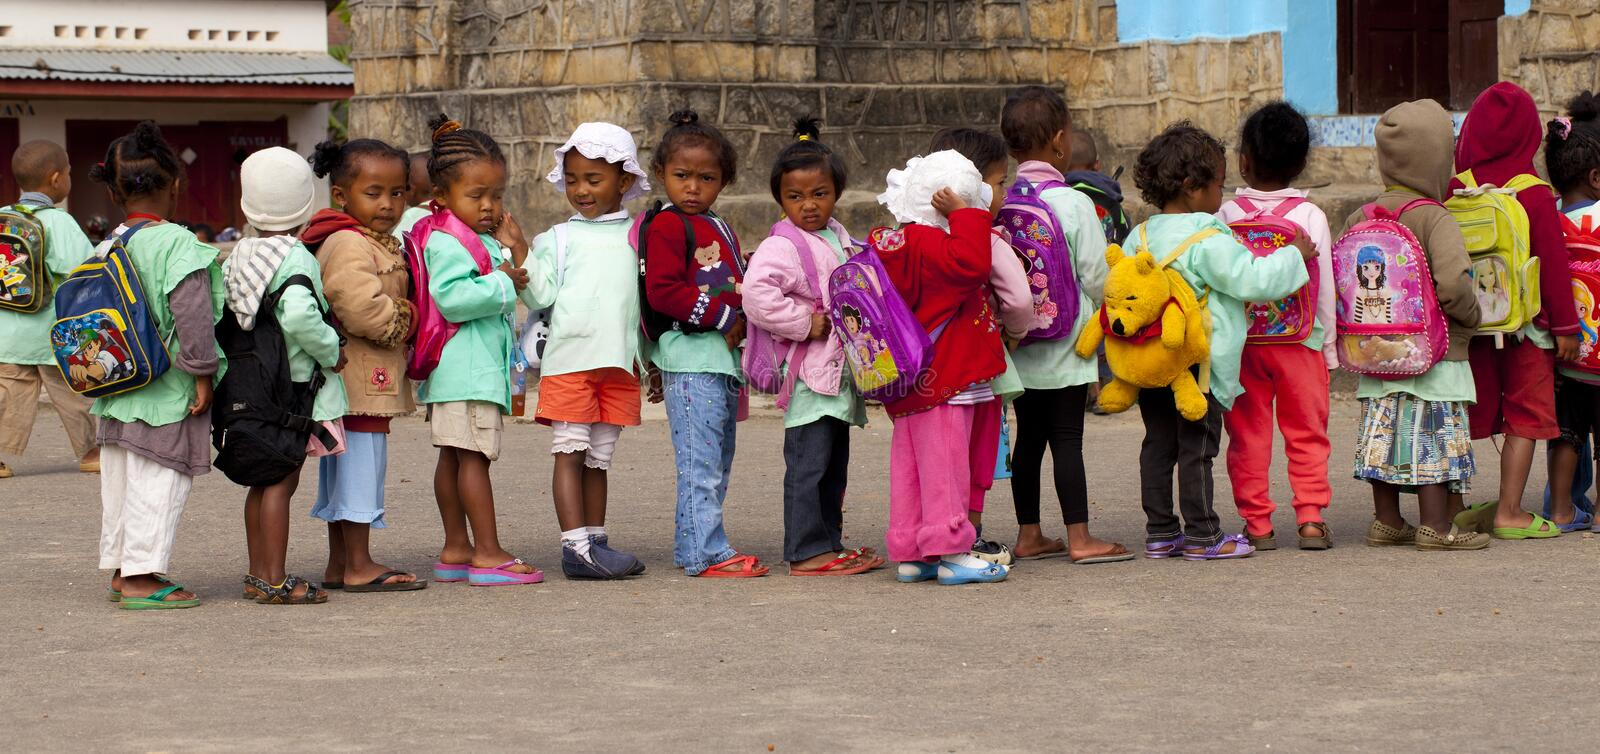 Children in the row royalty free stock photo